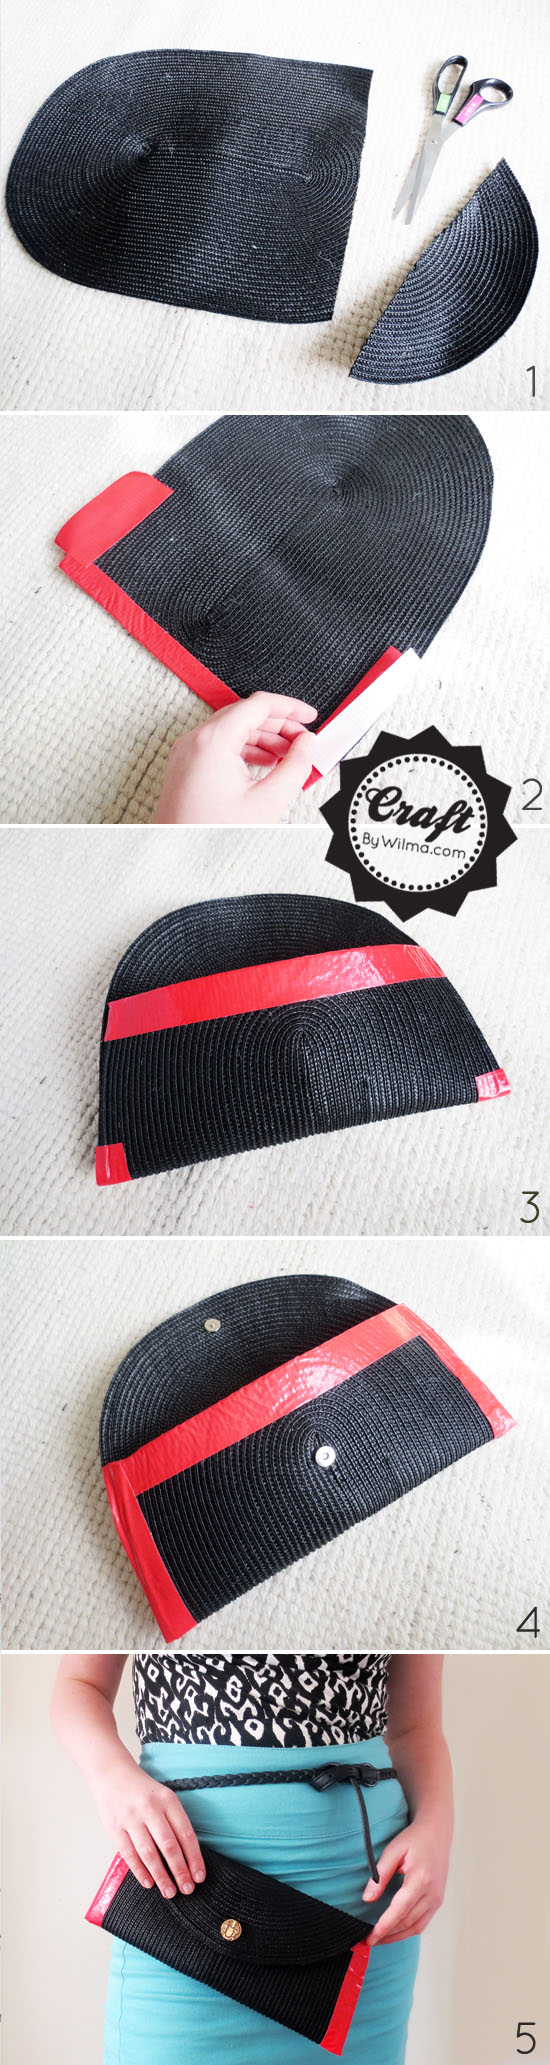 how to make table mat with woolen thread